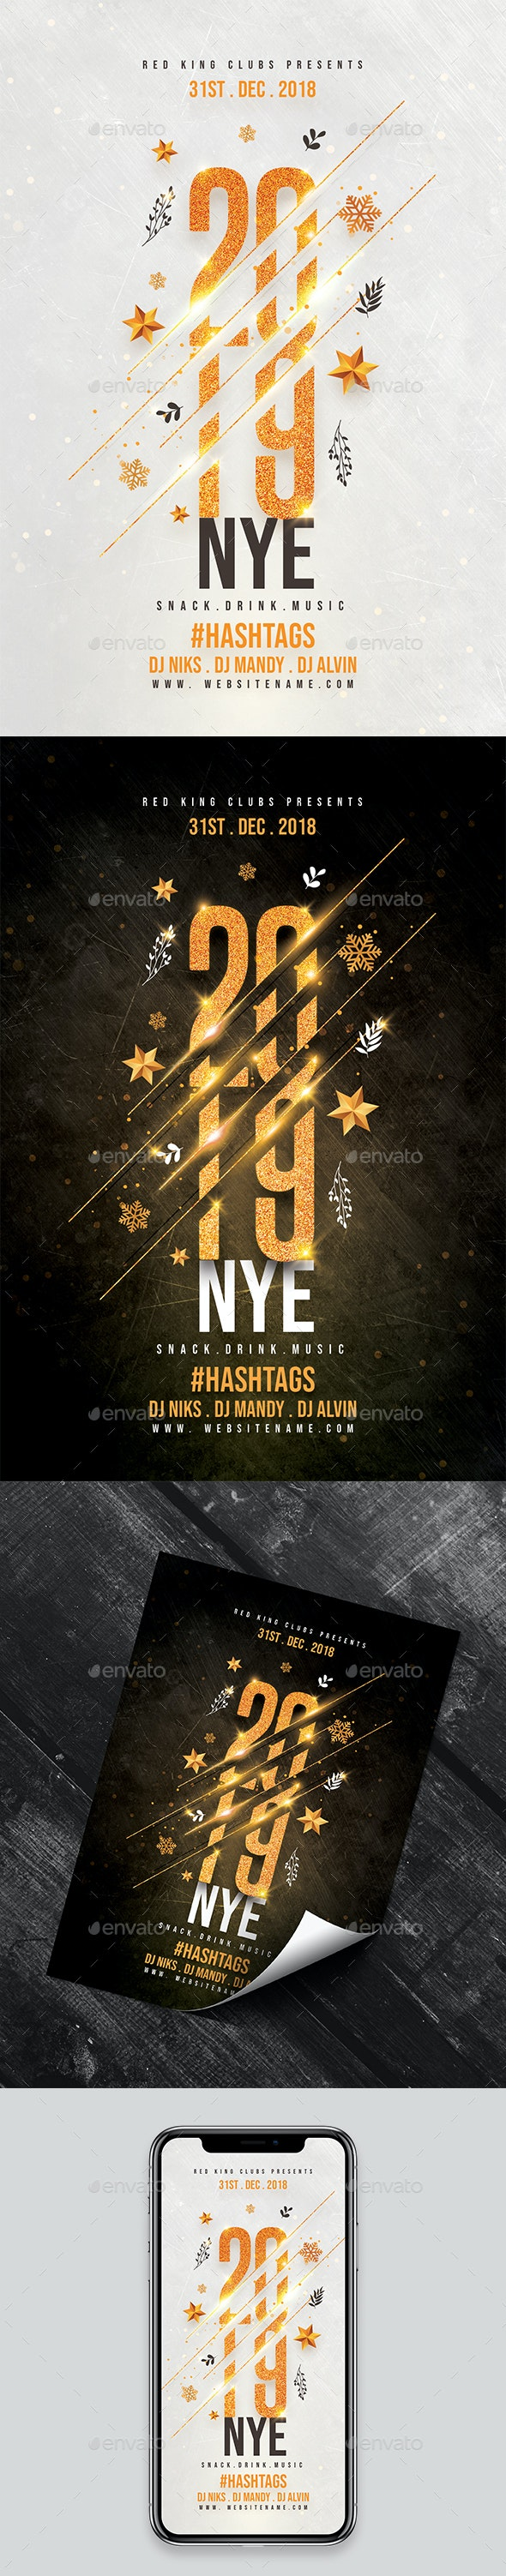 2019 NYE Celebration FLyer - Clubs & Parties Events